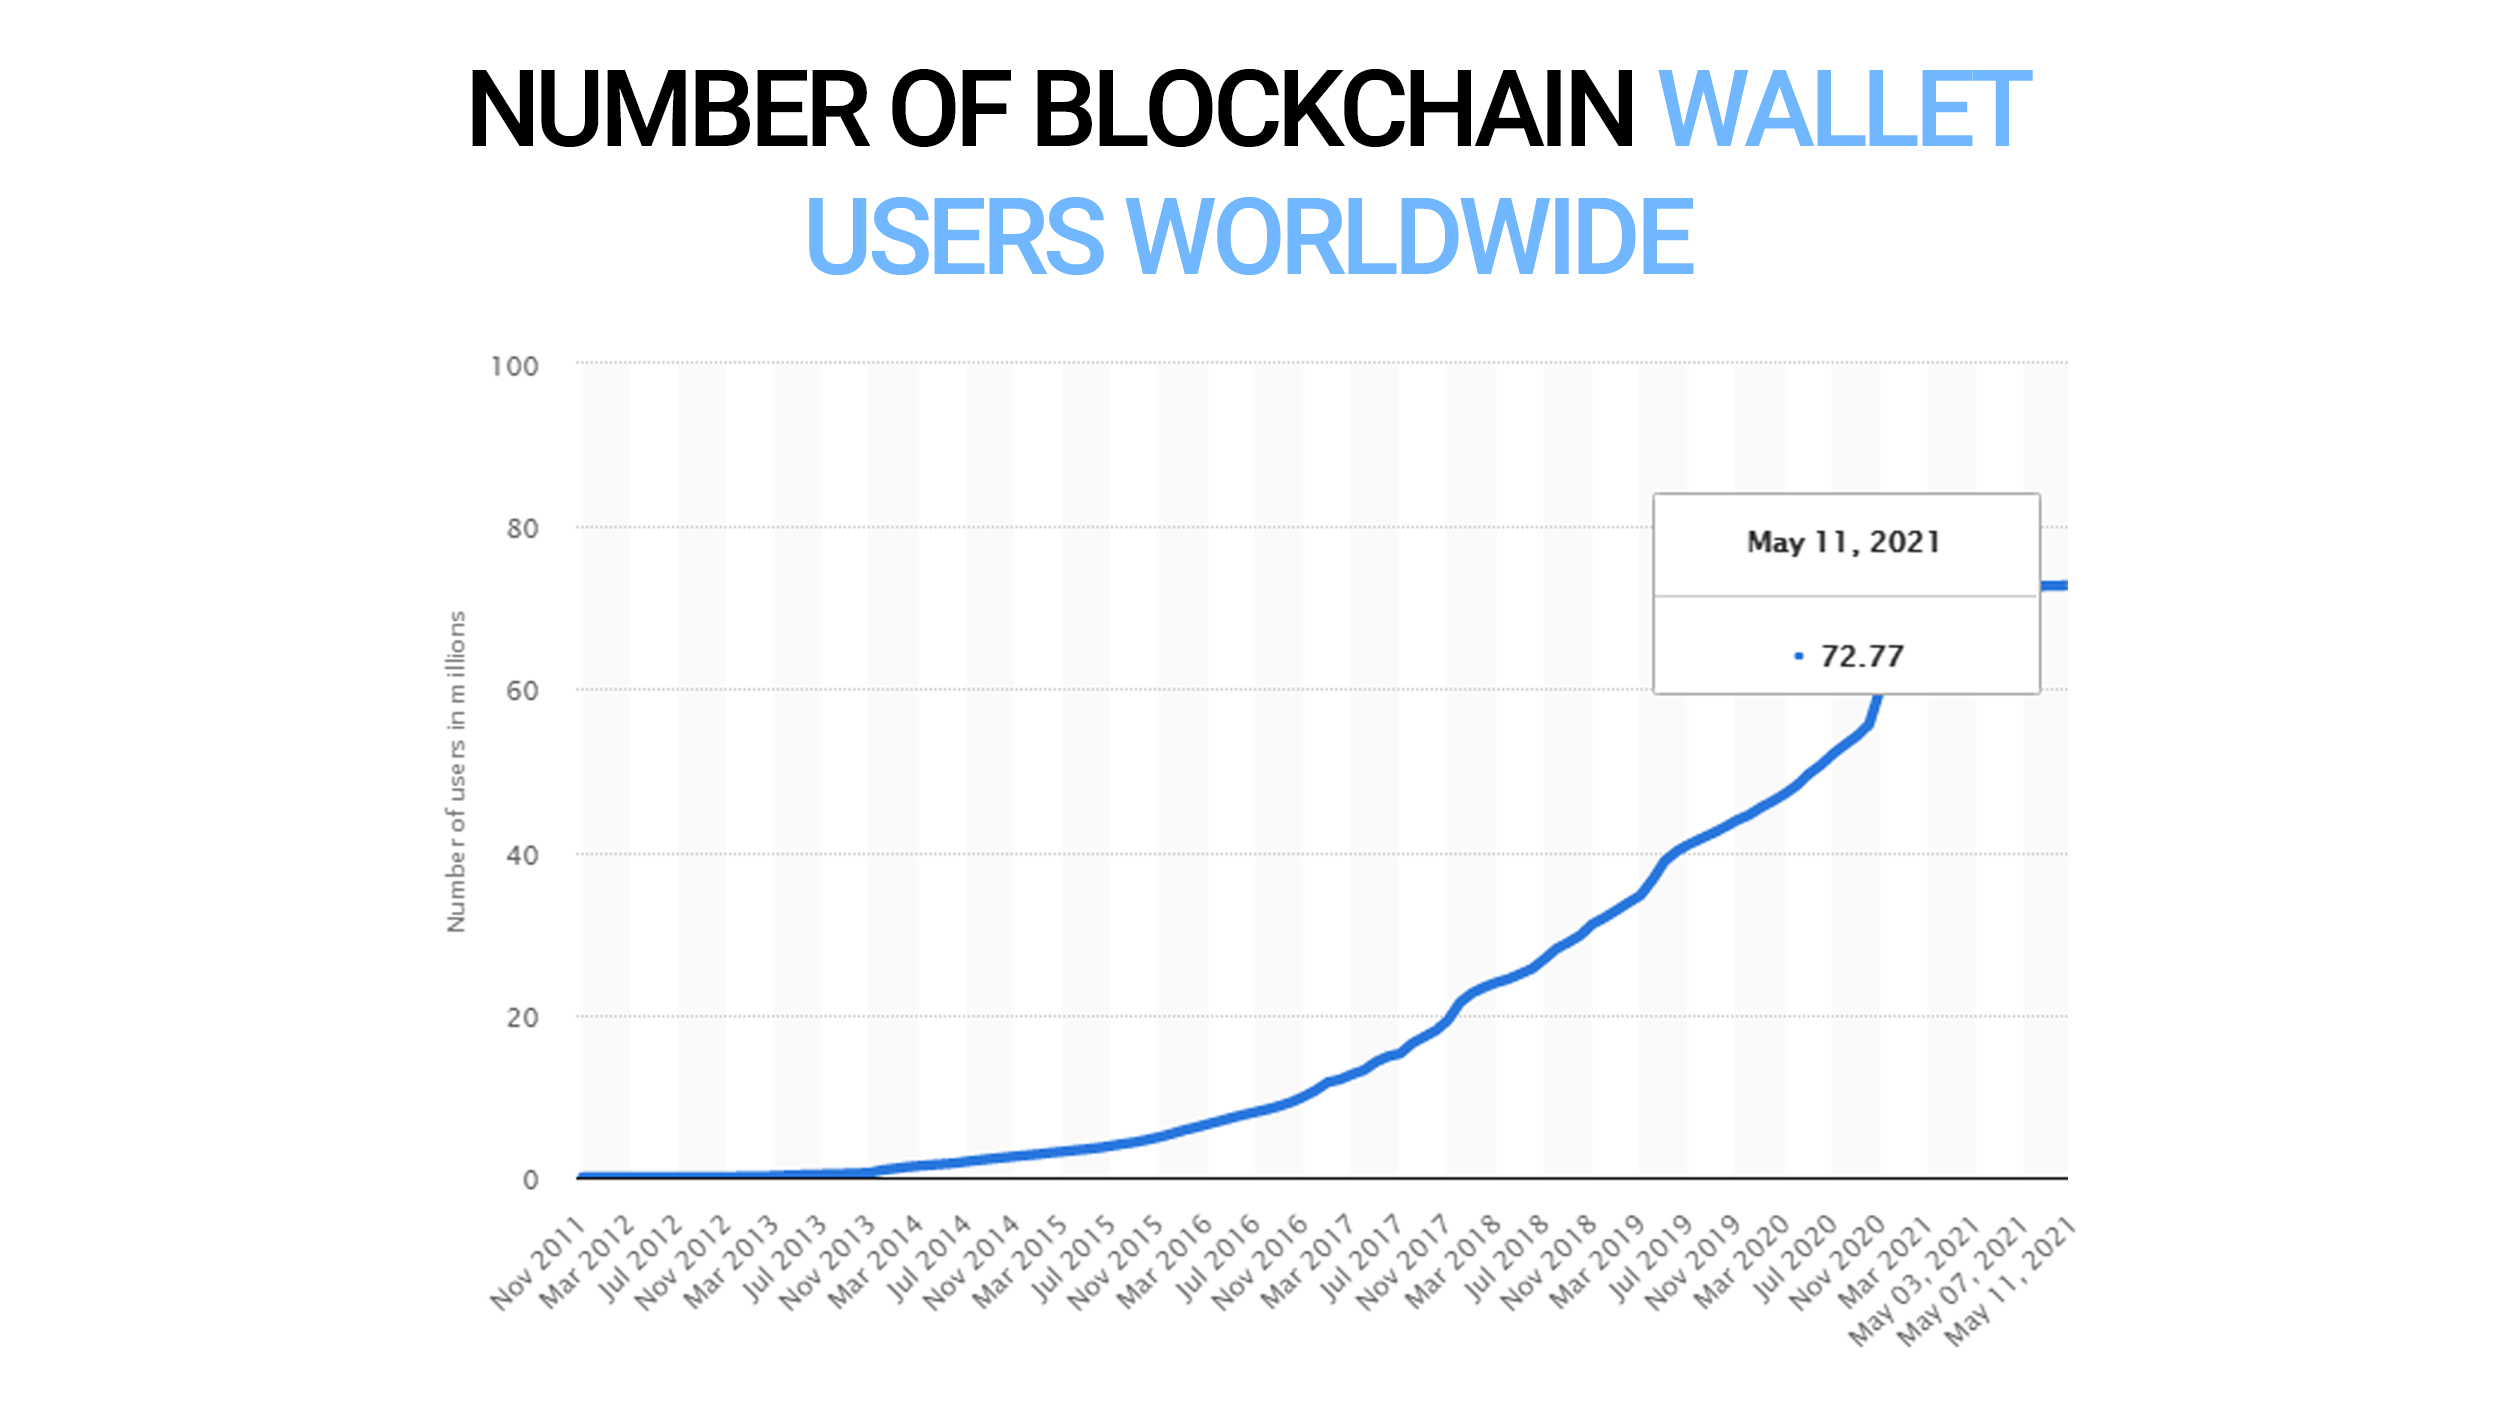 Number of Blockchain wallet users worldwide